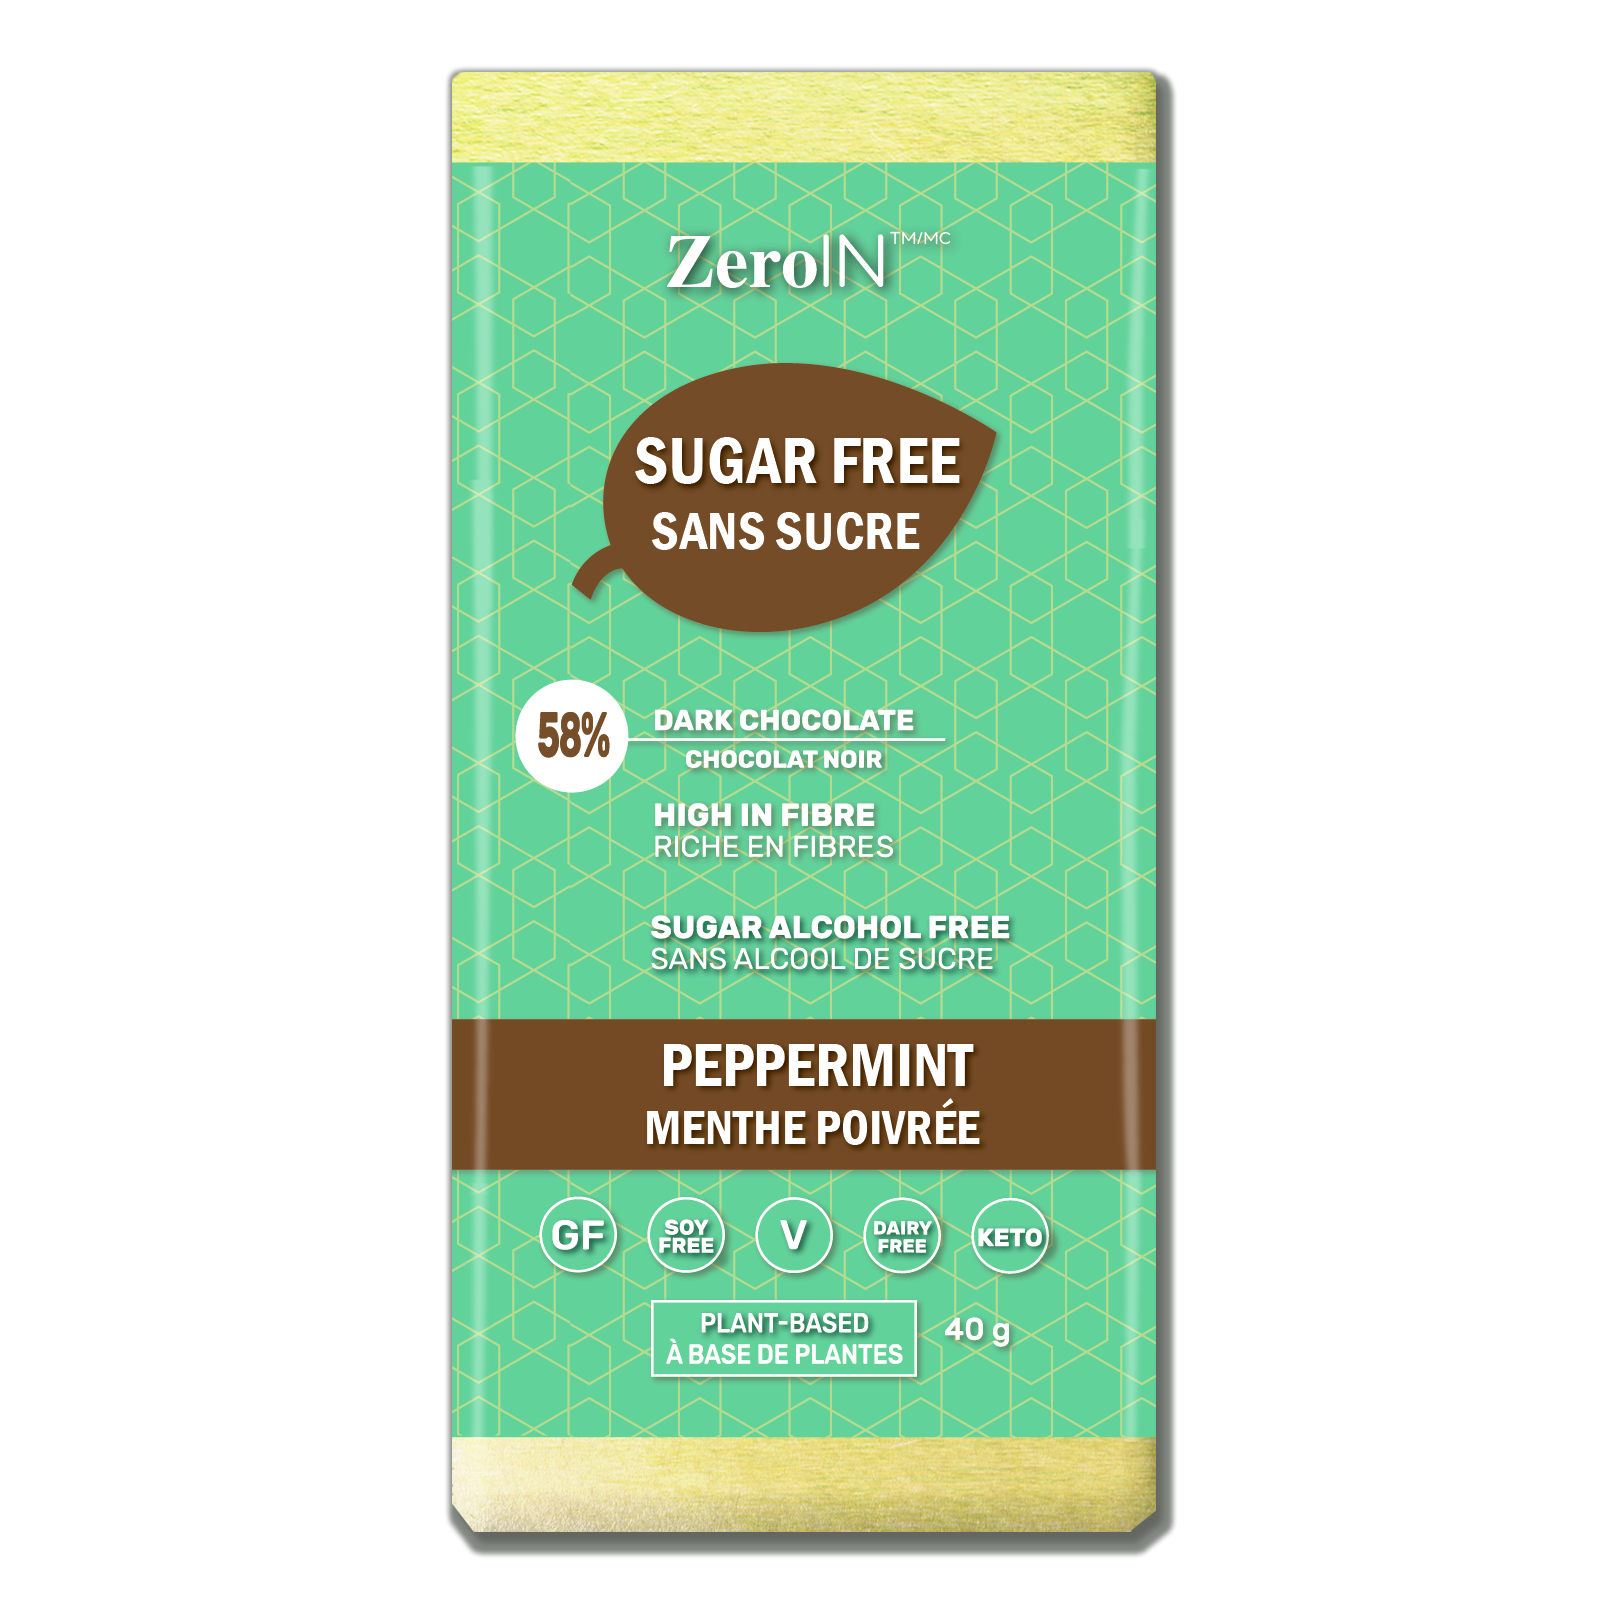 Peppermint Dark Chocolate - Sugar Free, Low Carb